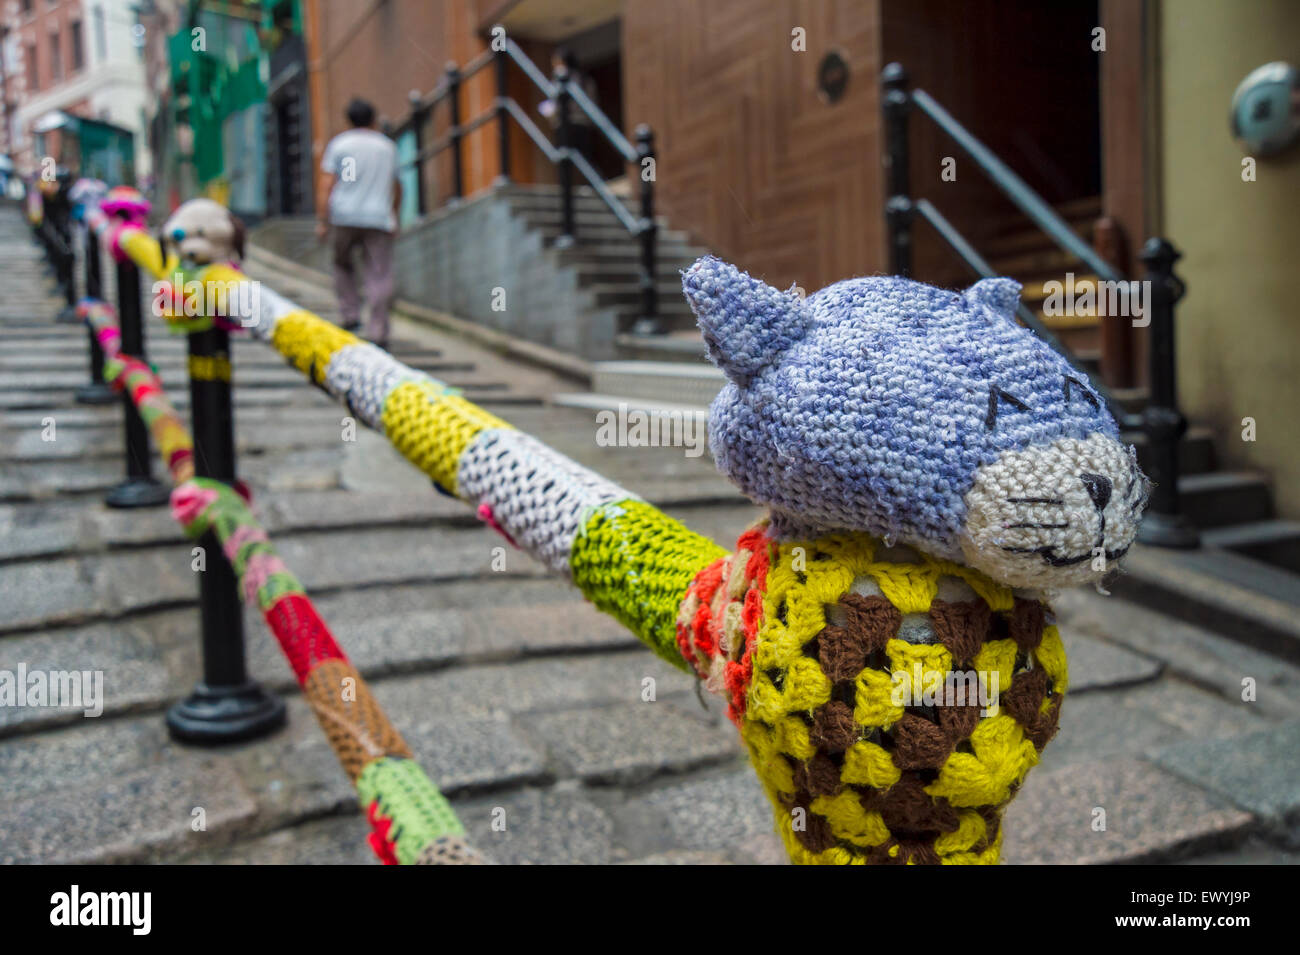 Knitting Yarn Hong Kong : Yarn bombing works of artist esther poon on pottinger